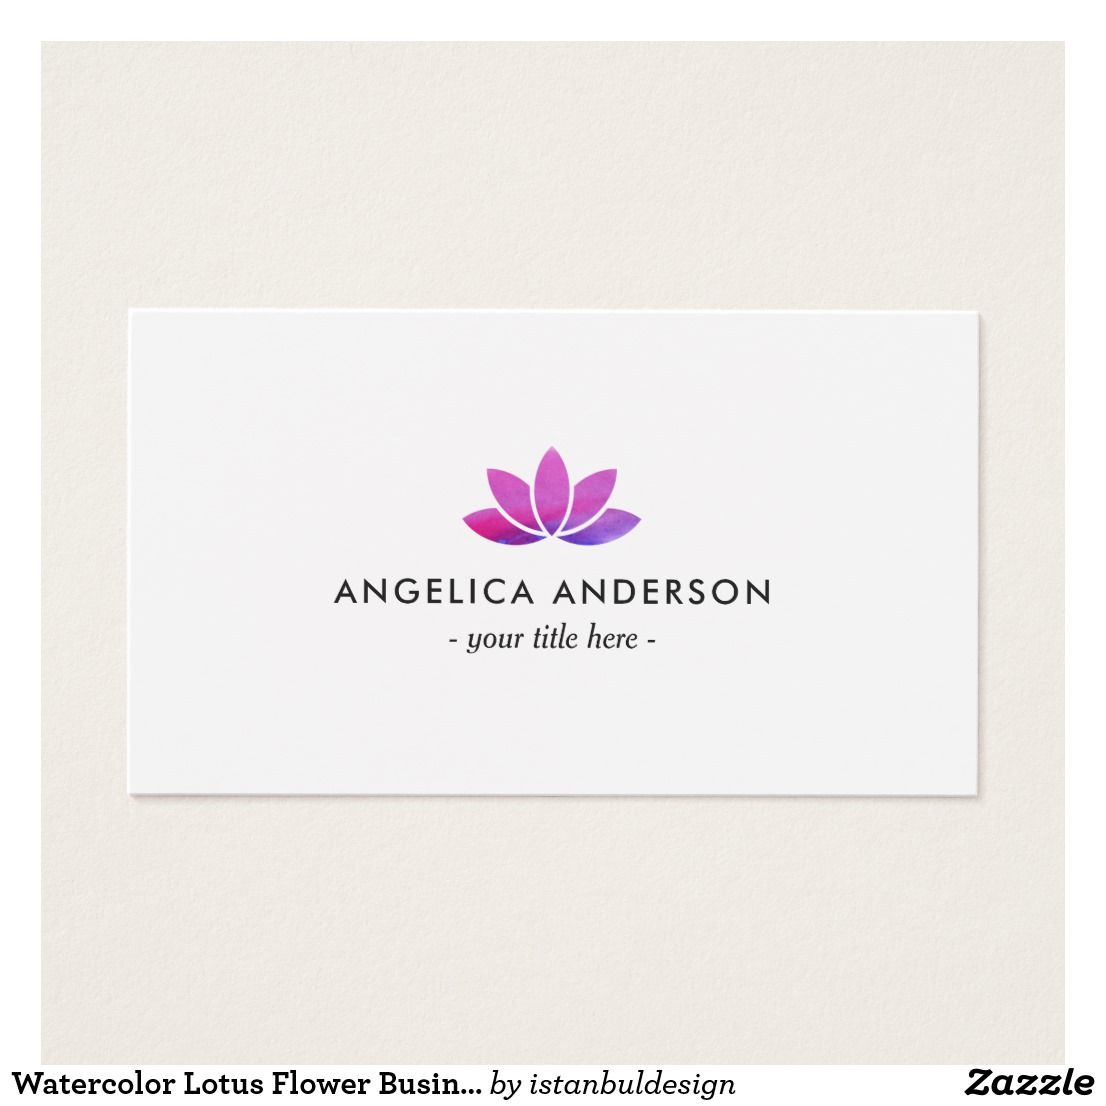 Watercolor lotus flower business card business cards and business watercolor lotus flower business card colourmoves